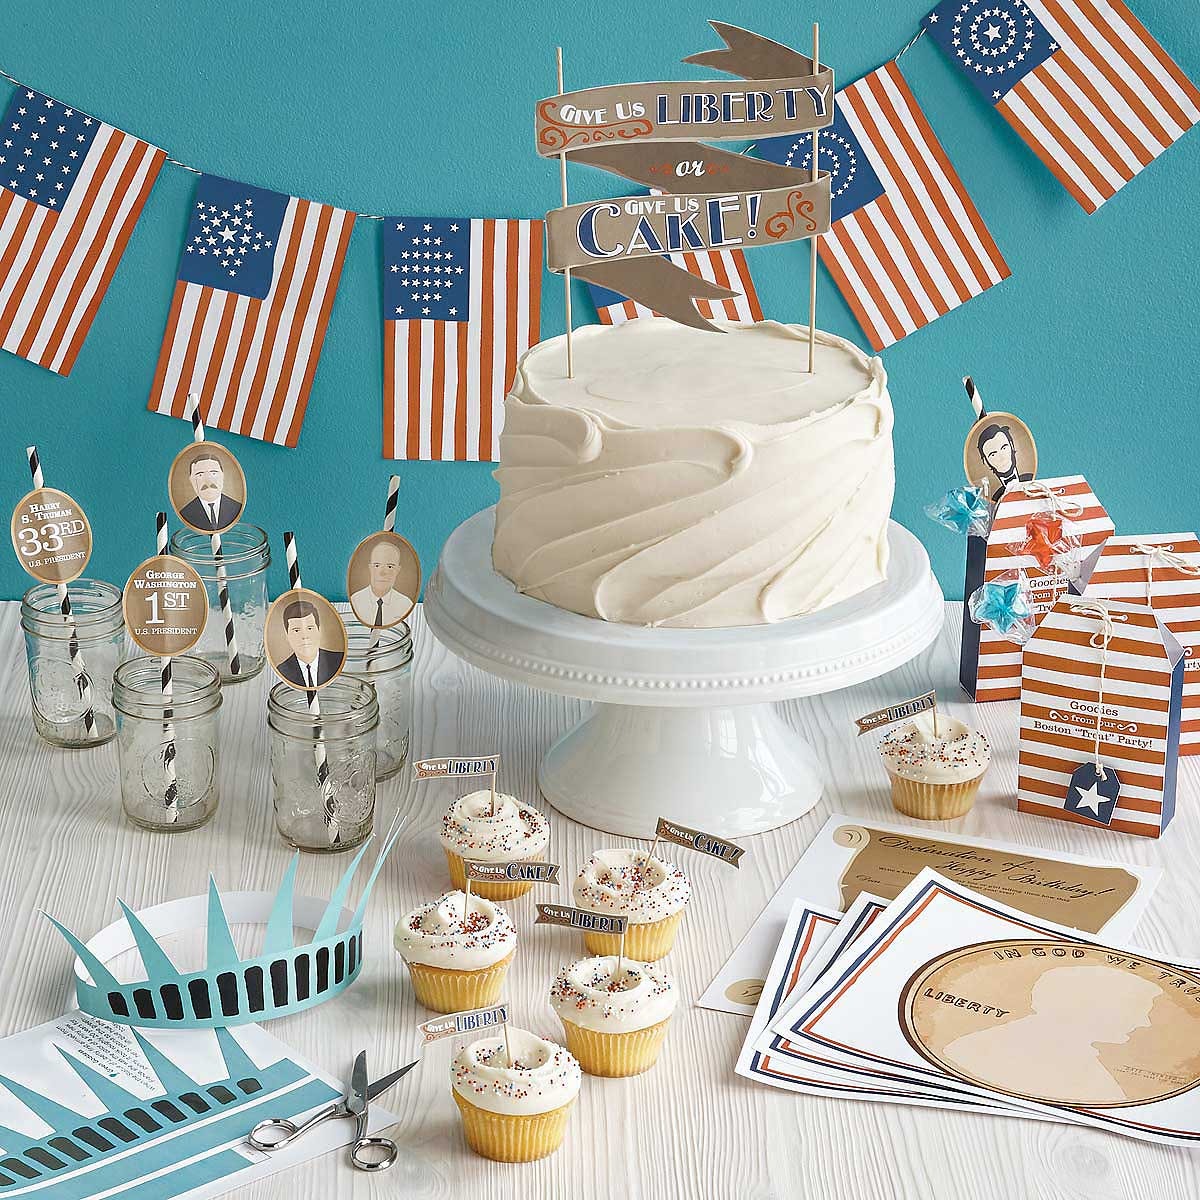 Printable Party Kit History Buff historical trivia UncommonGoods